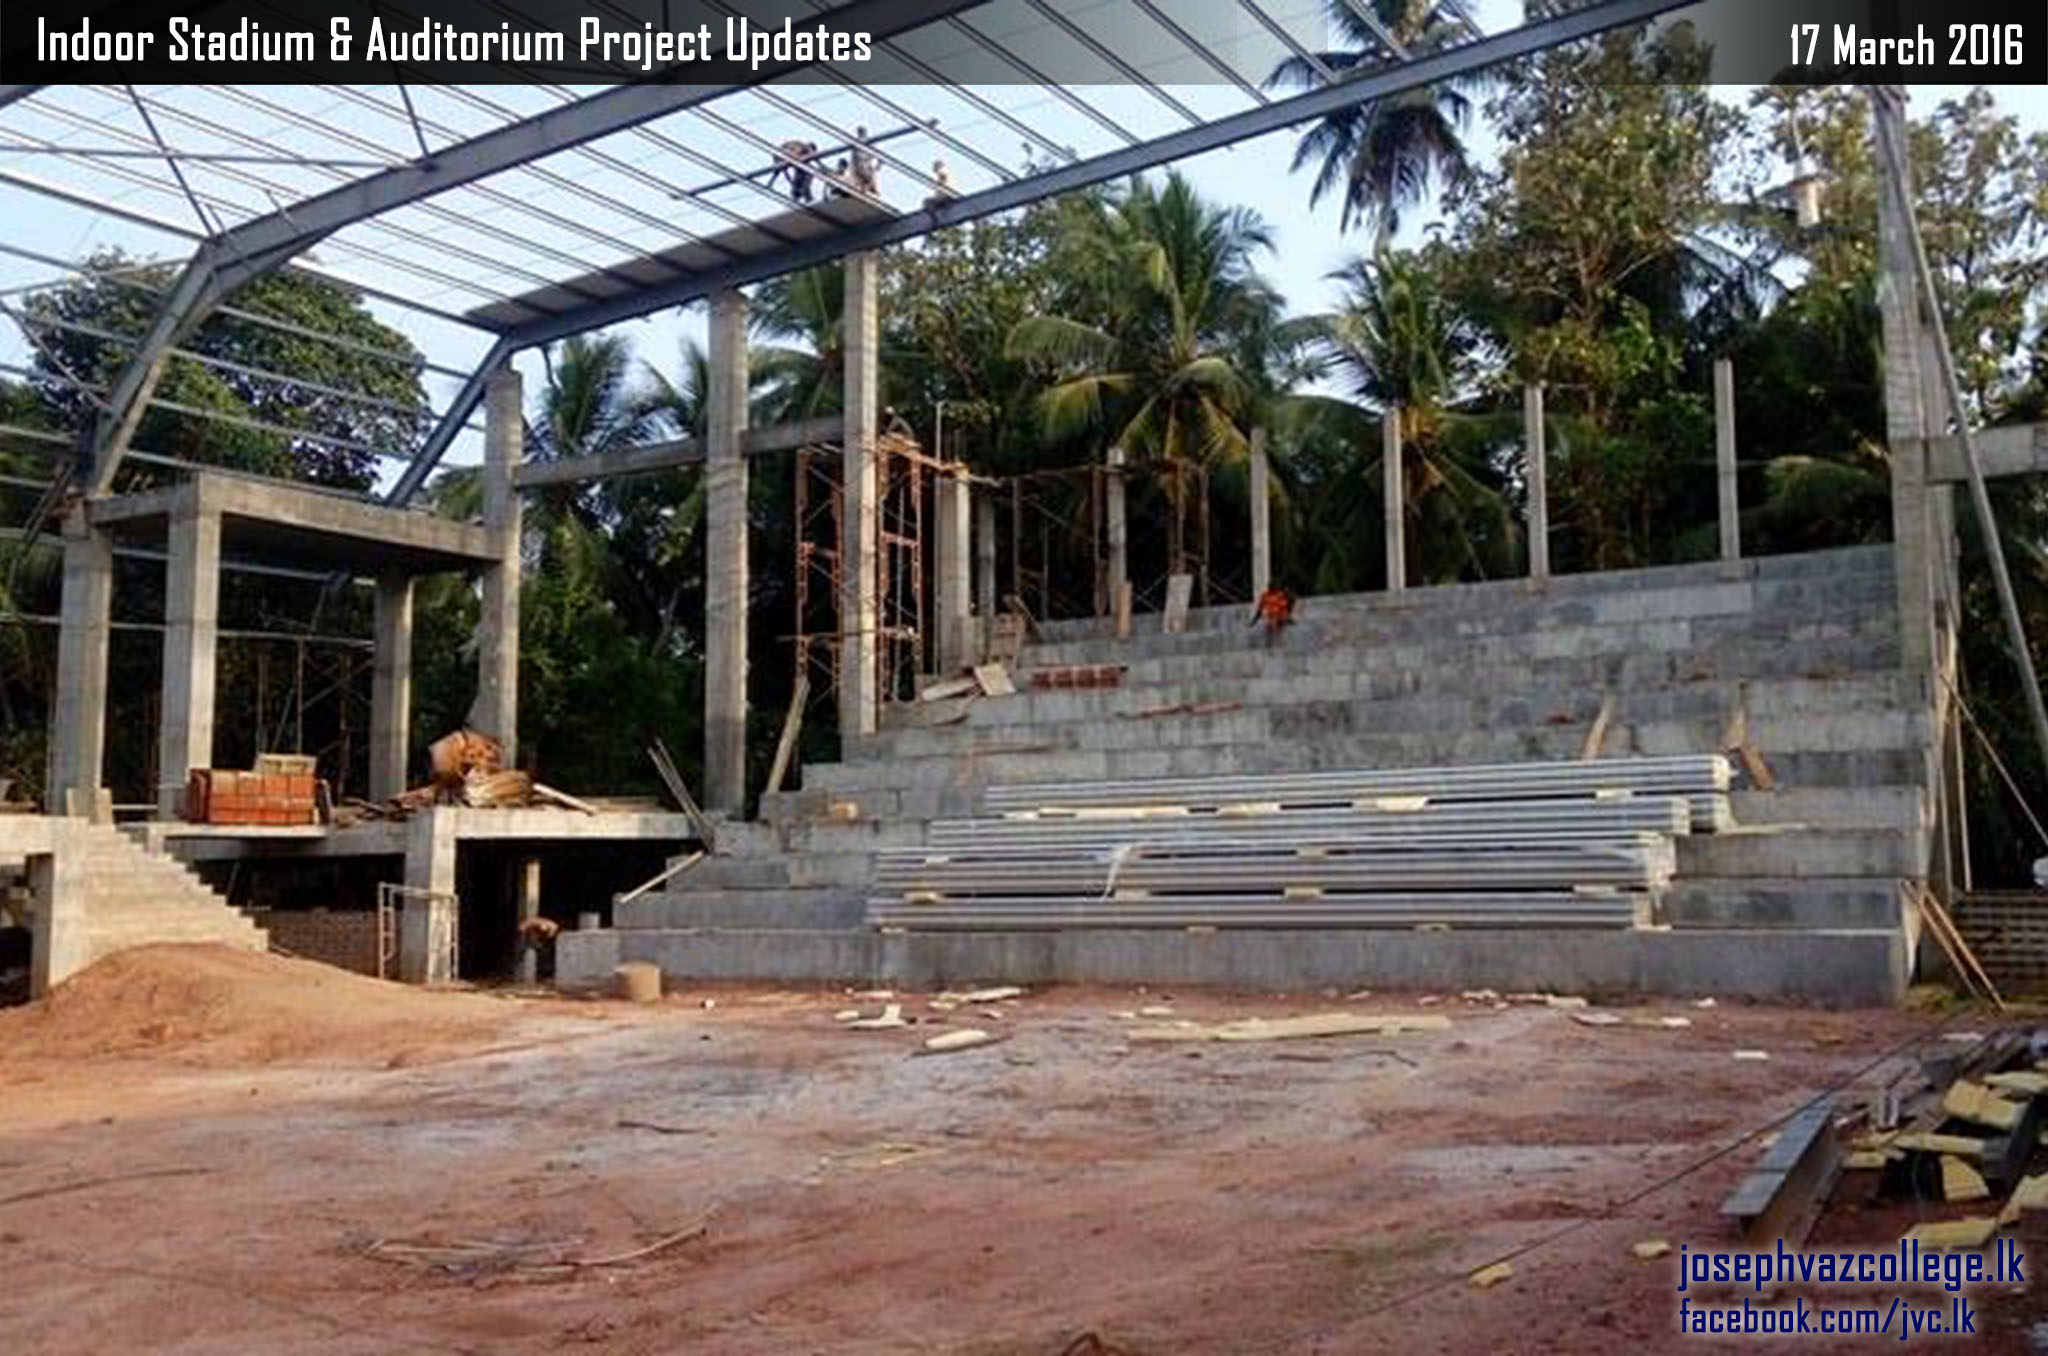 Commencement Of Construction Of Indoor Stadium Updates - Joseph Vaz College